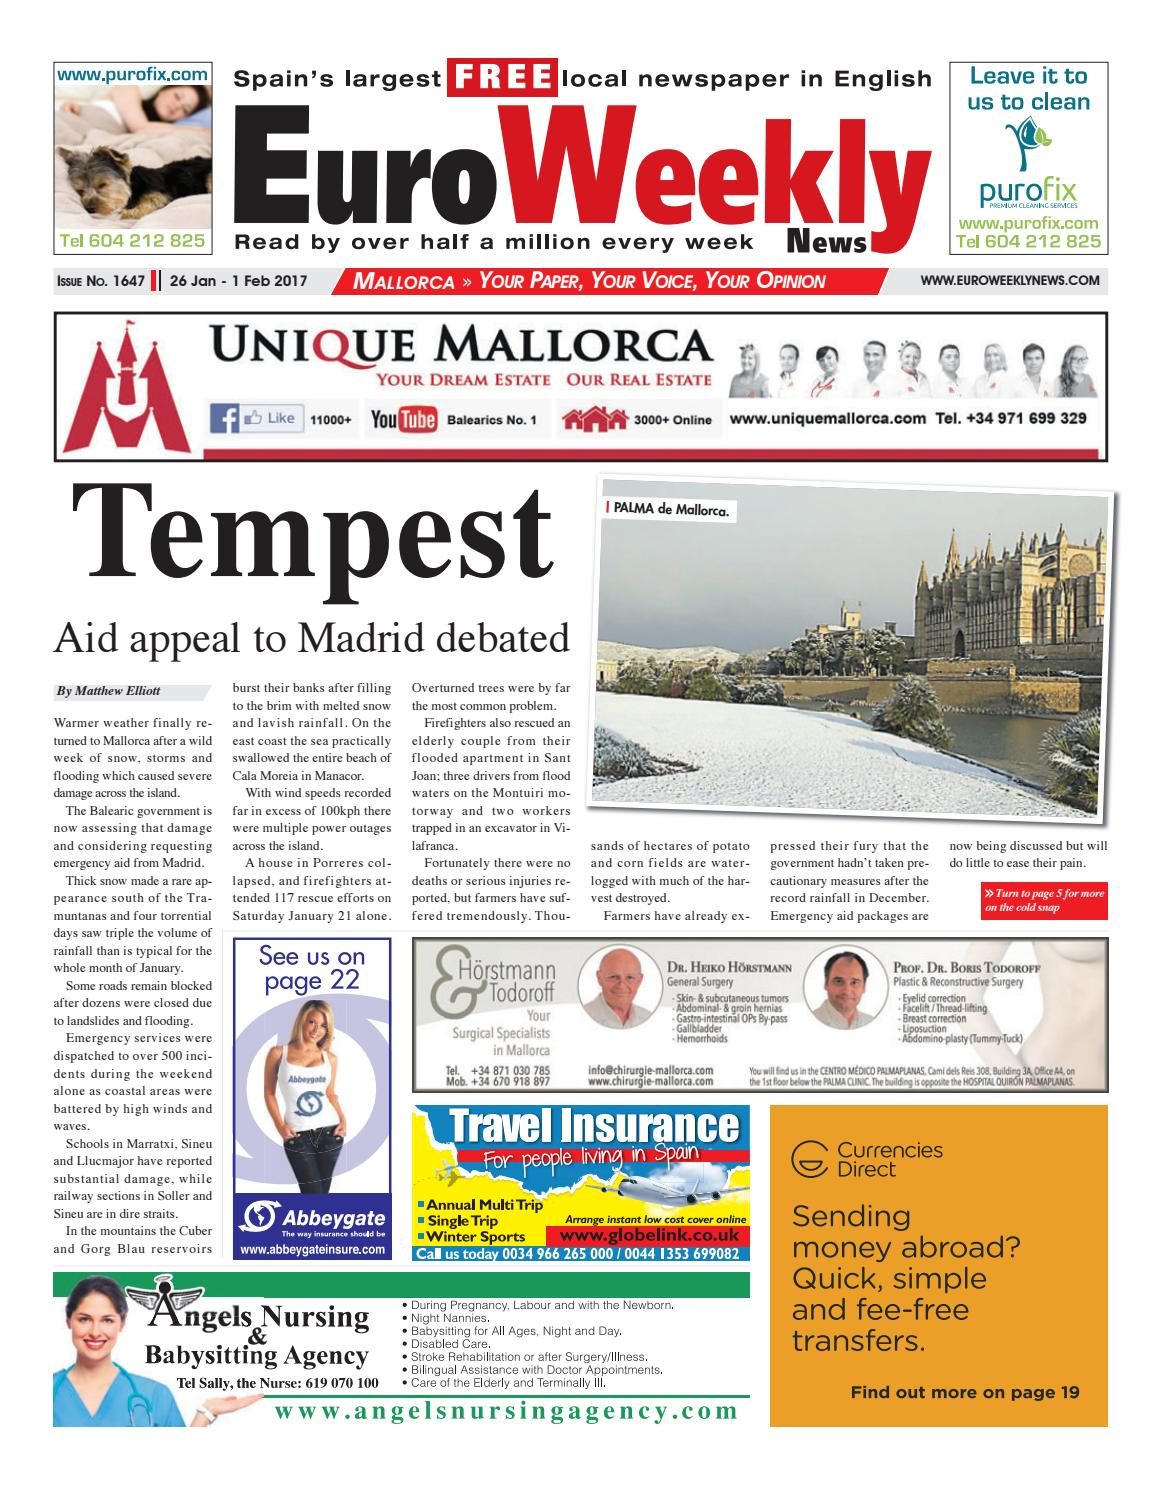 euro weekly news mallorca 26 1 2017 issue euro weekly news mallorca 26 1 2017 issue 1647 by euro weekly news media s a issuu